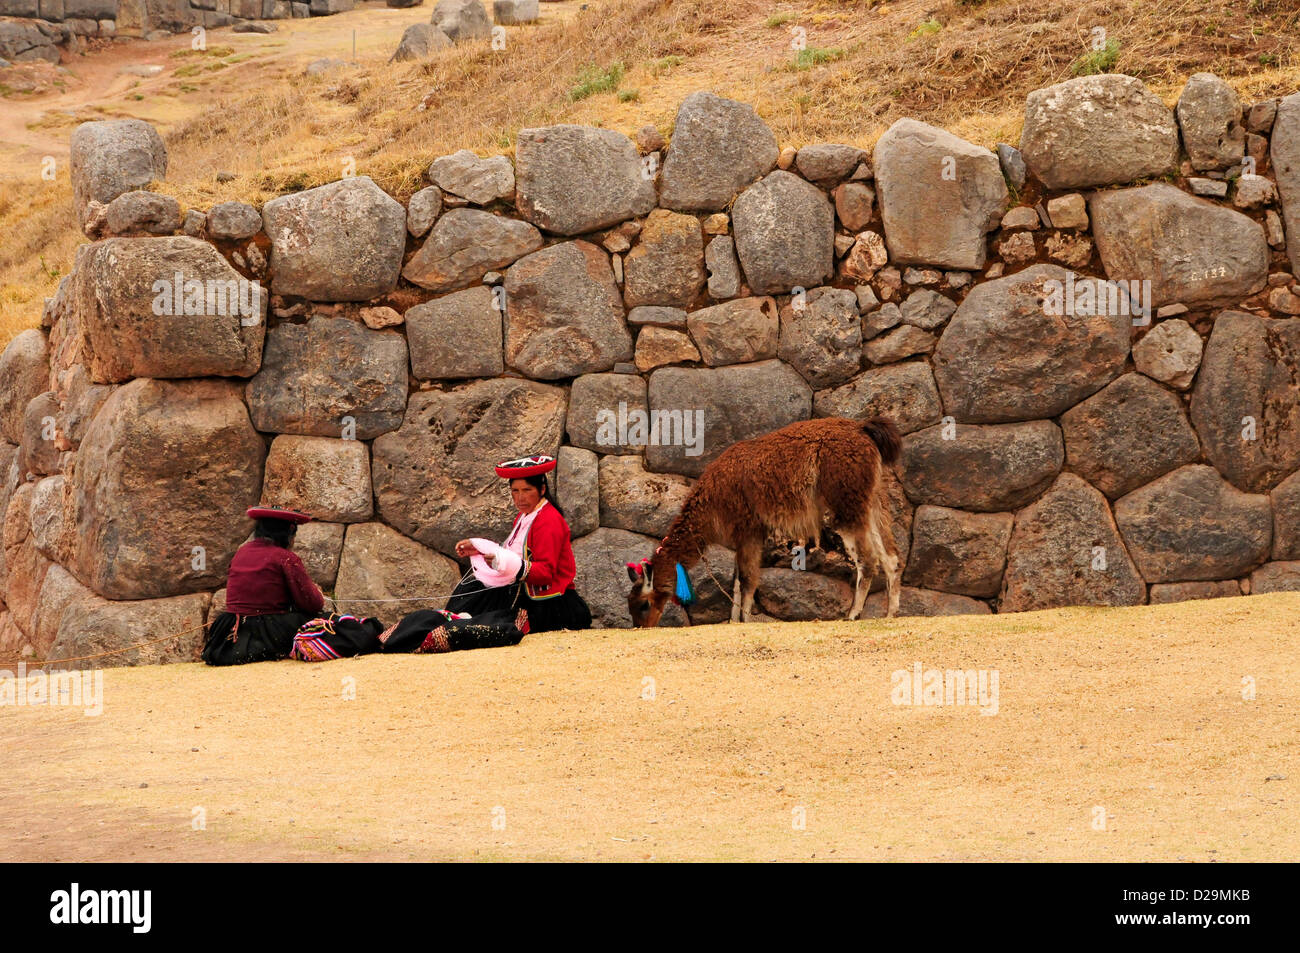 Peru, Women Weaving By Stone Wall - Stock Image